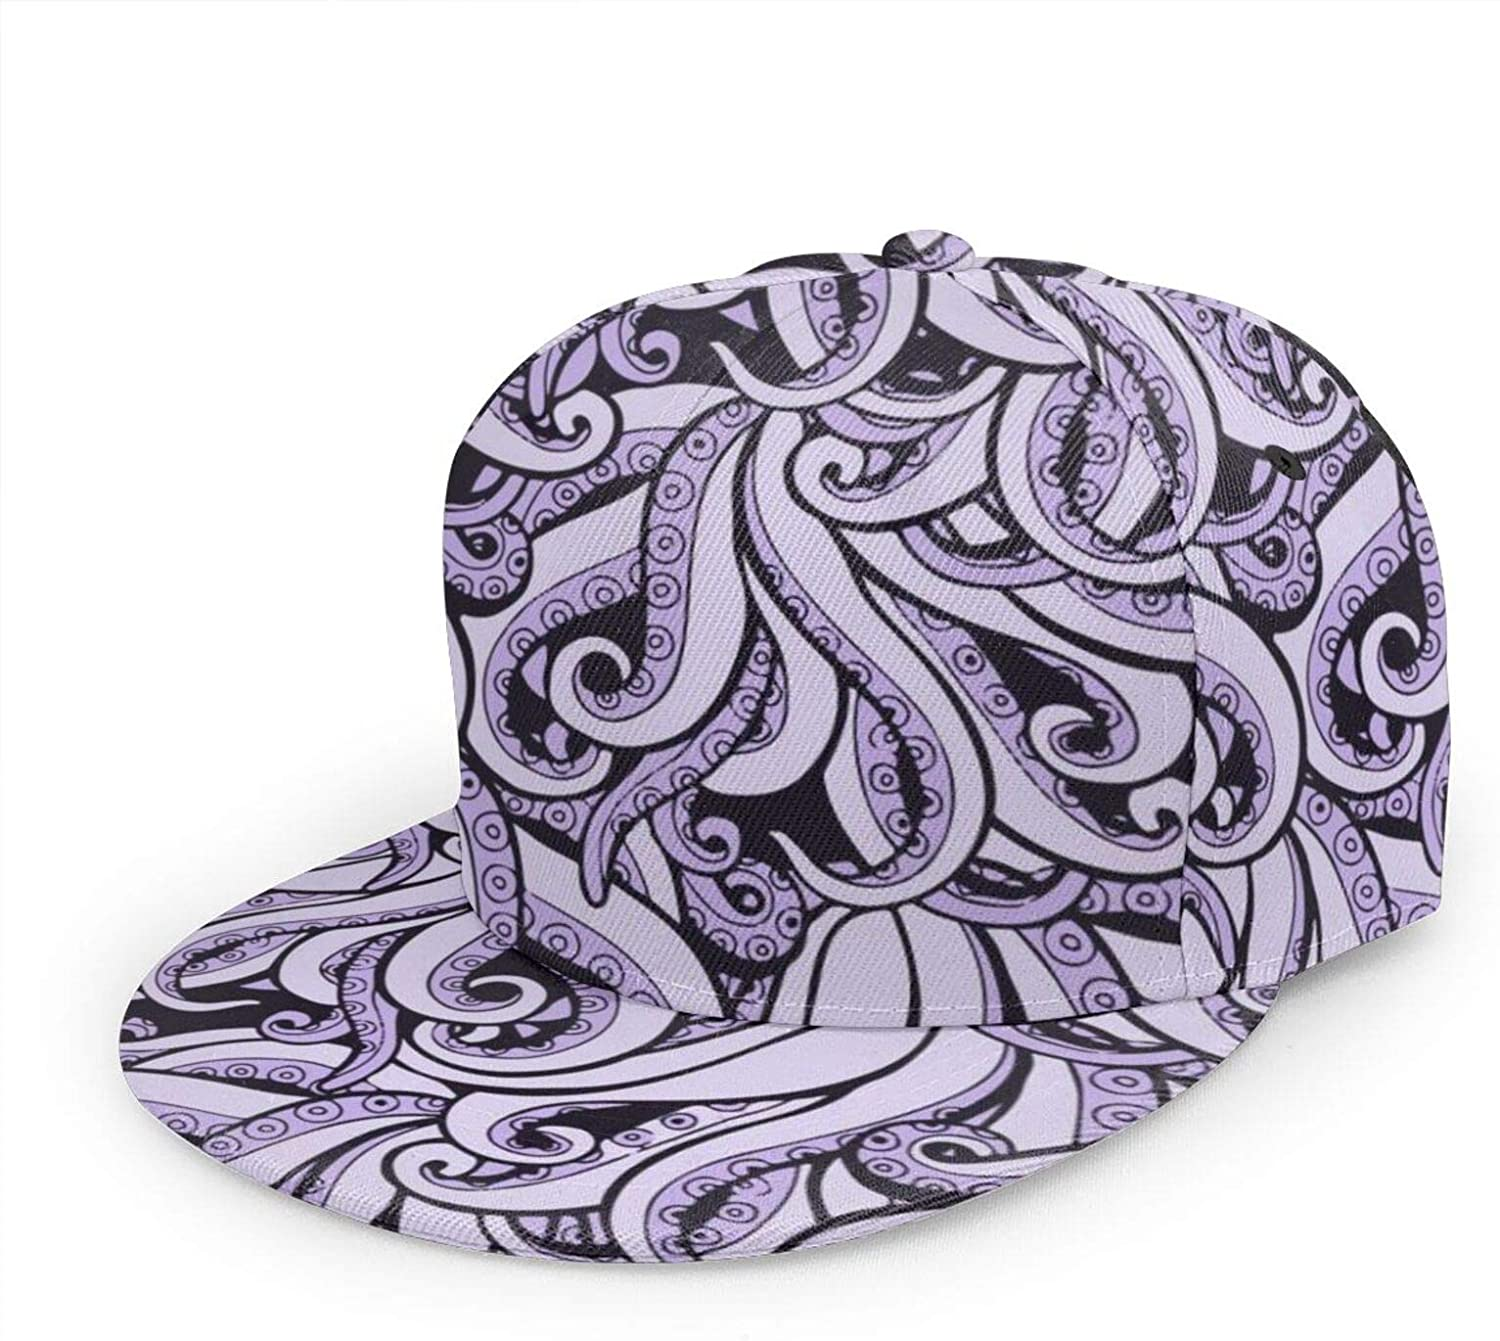 Unisex Baseball Cap, Hip-hop Snapback Flat Hat Fashion Sun Hat for Outdoor Activities,Ursula The Sea Witch Inspired